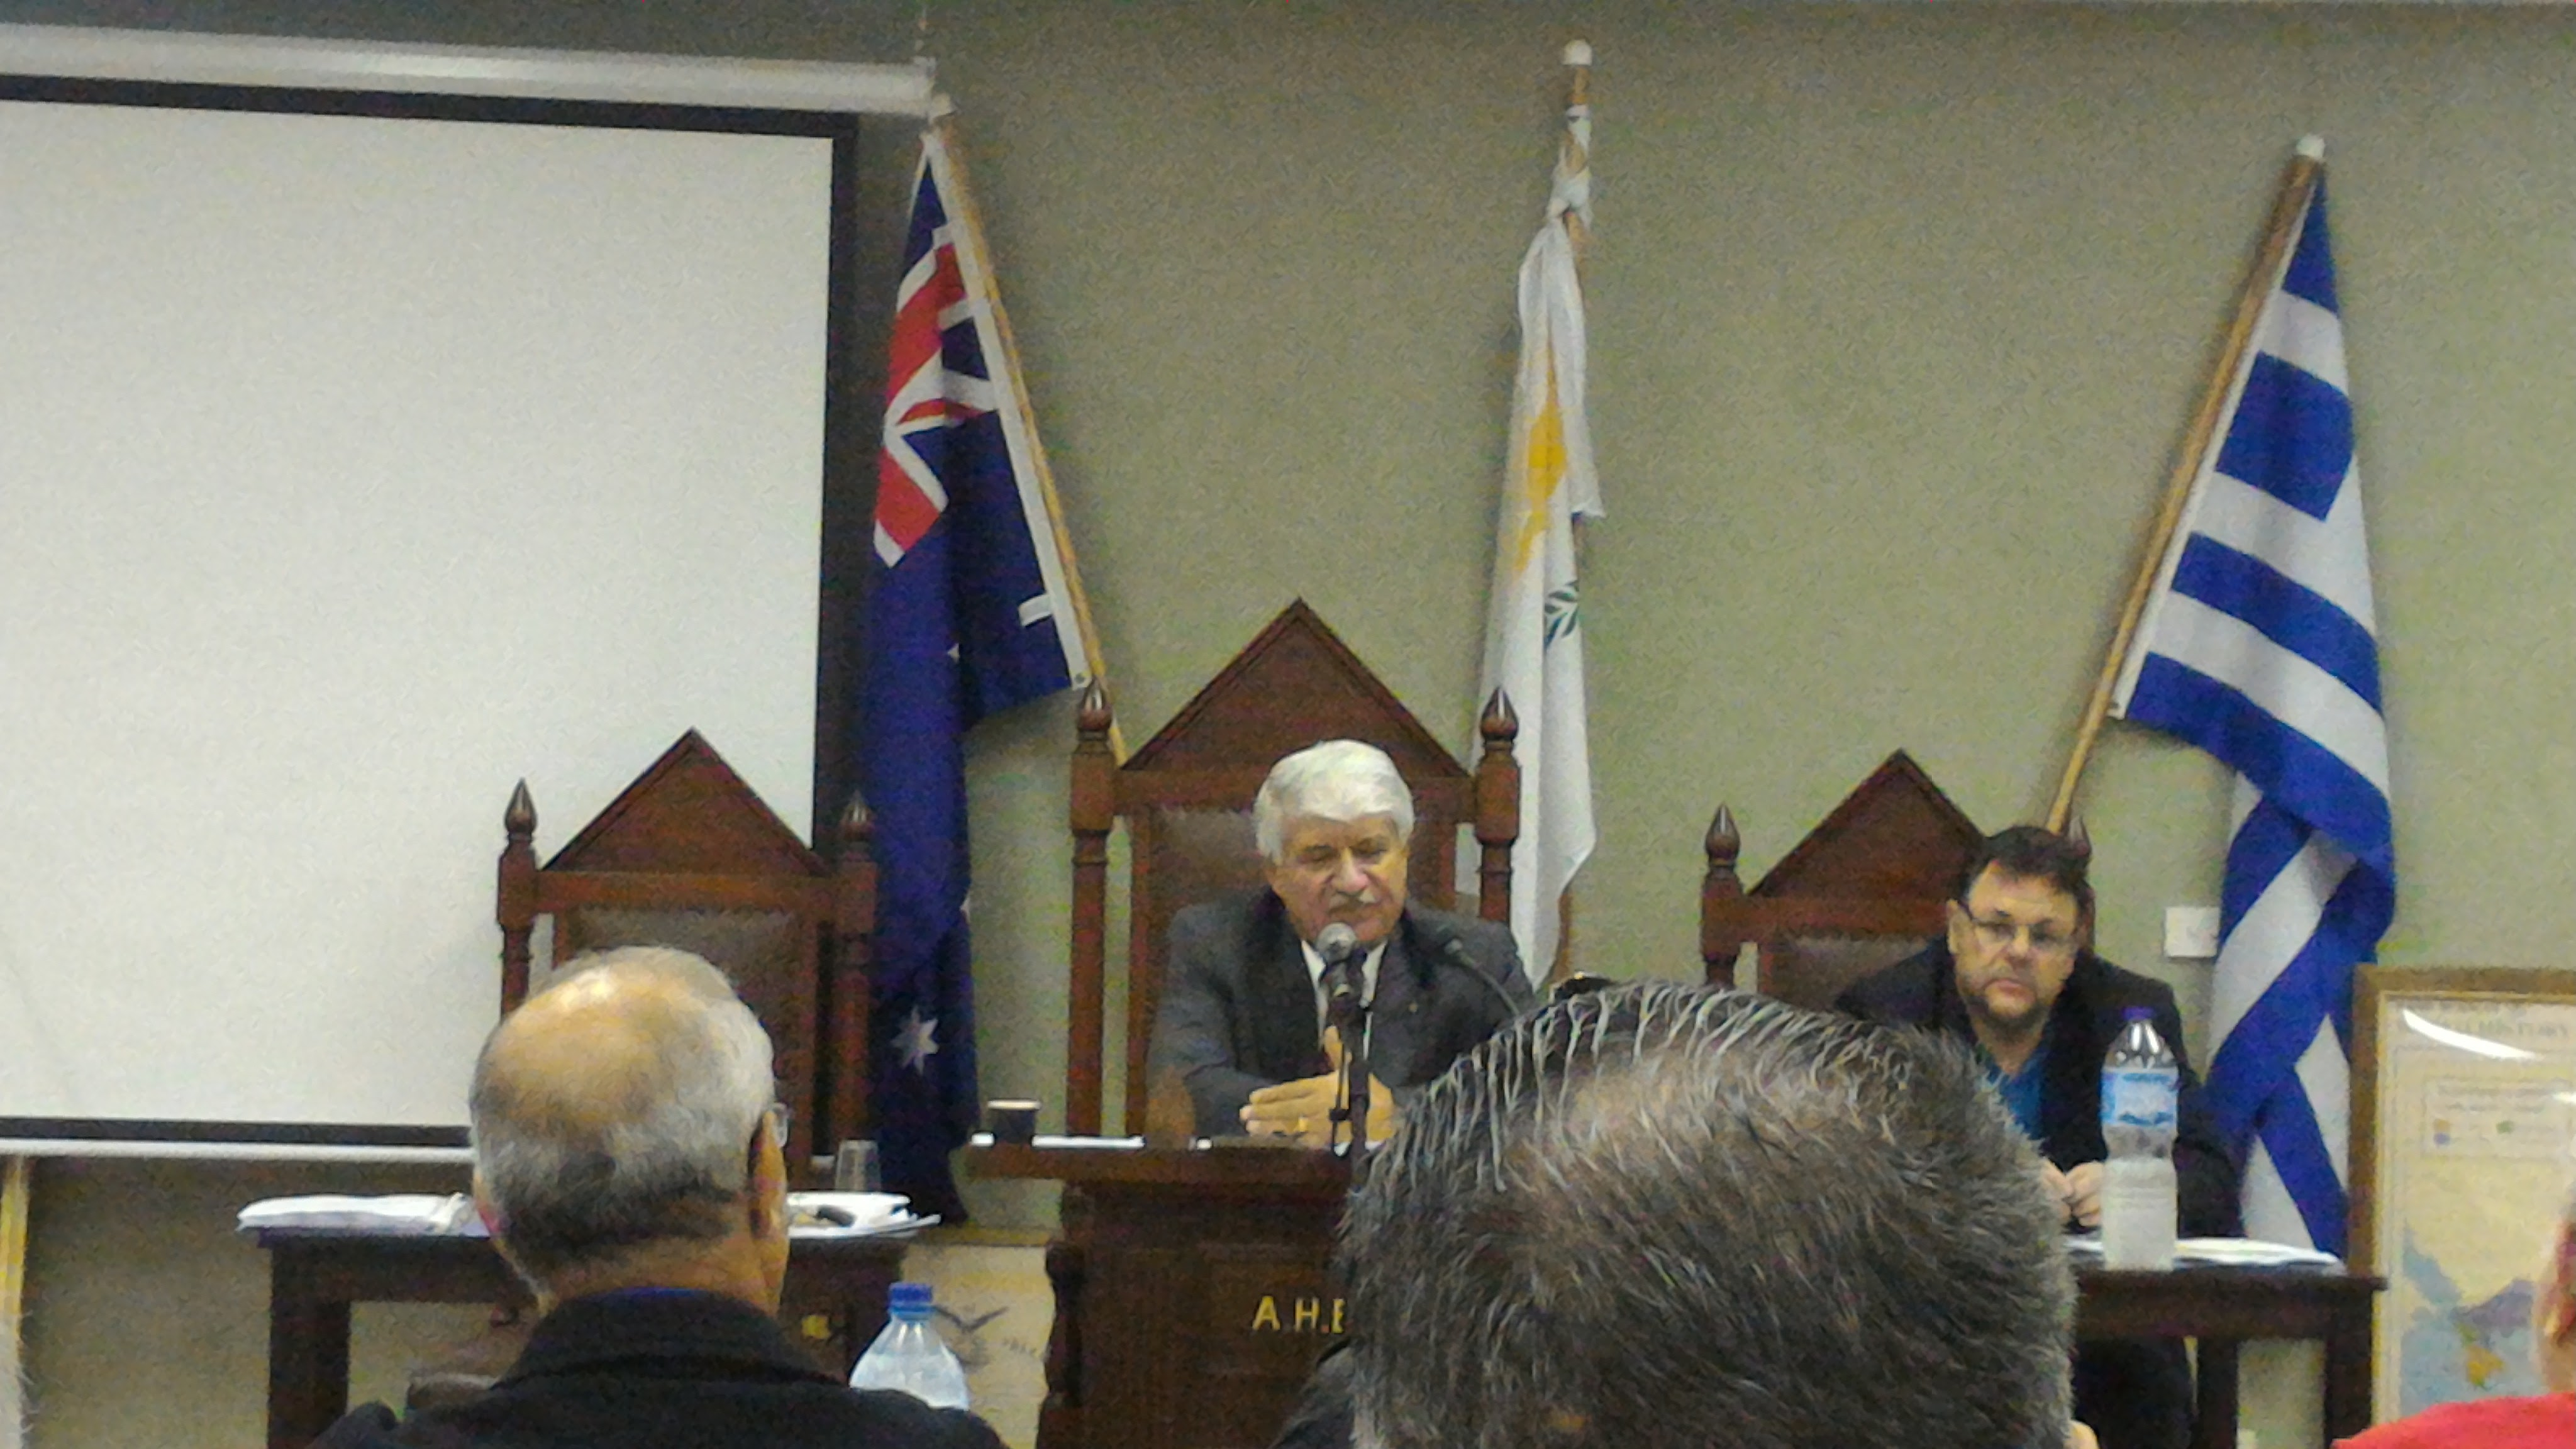 AHEPA NSW 61st State Convention